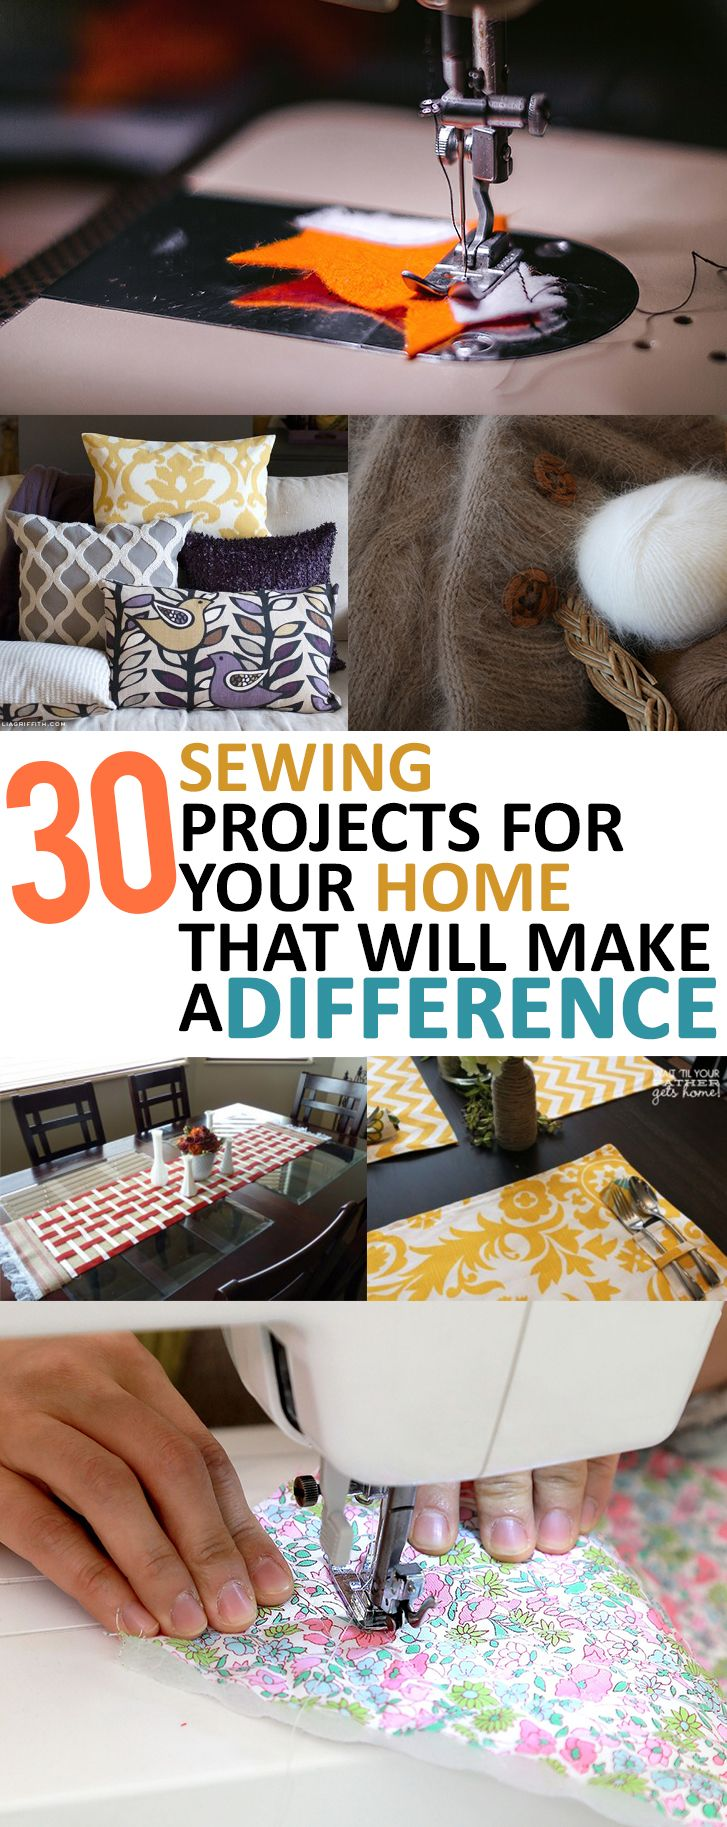 30-Sewing-Projects-for-Your-Home-That-Will-Make-a-Difference.jpg 727×1.827 piksel